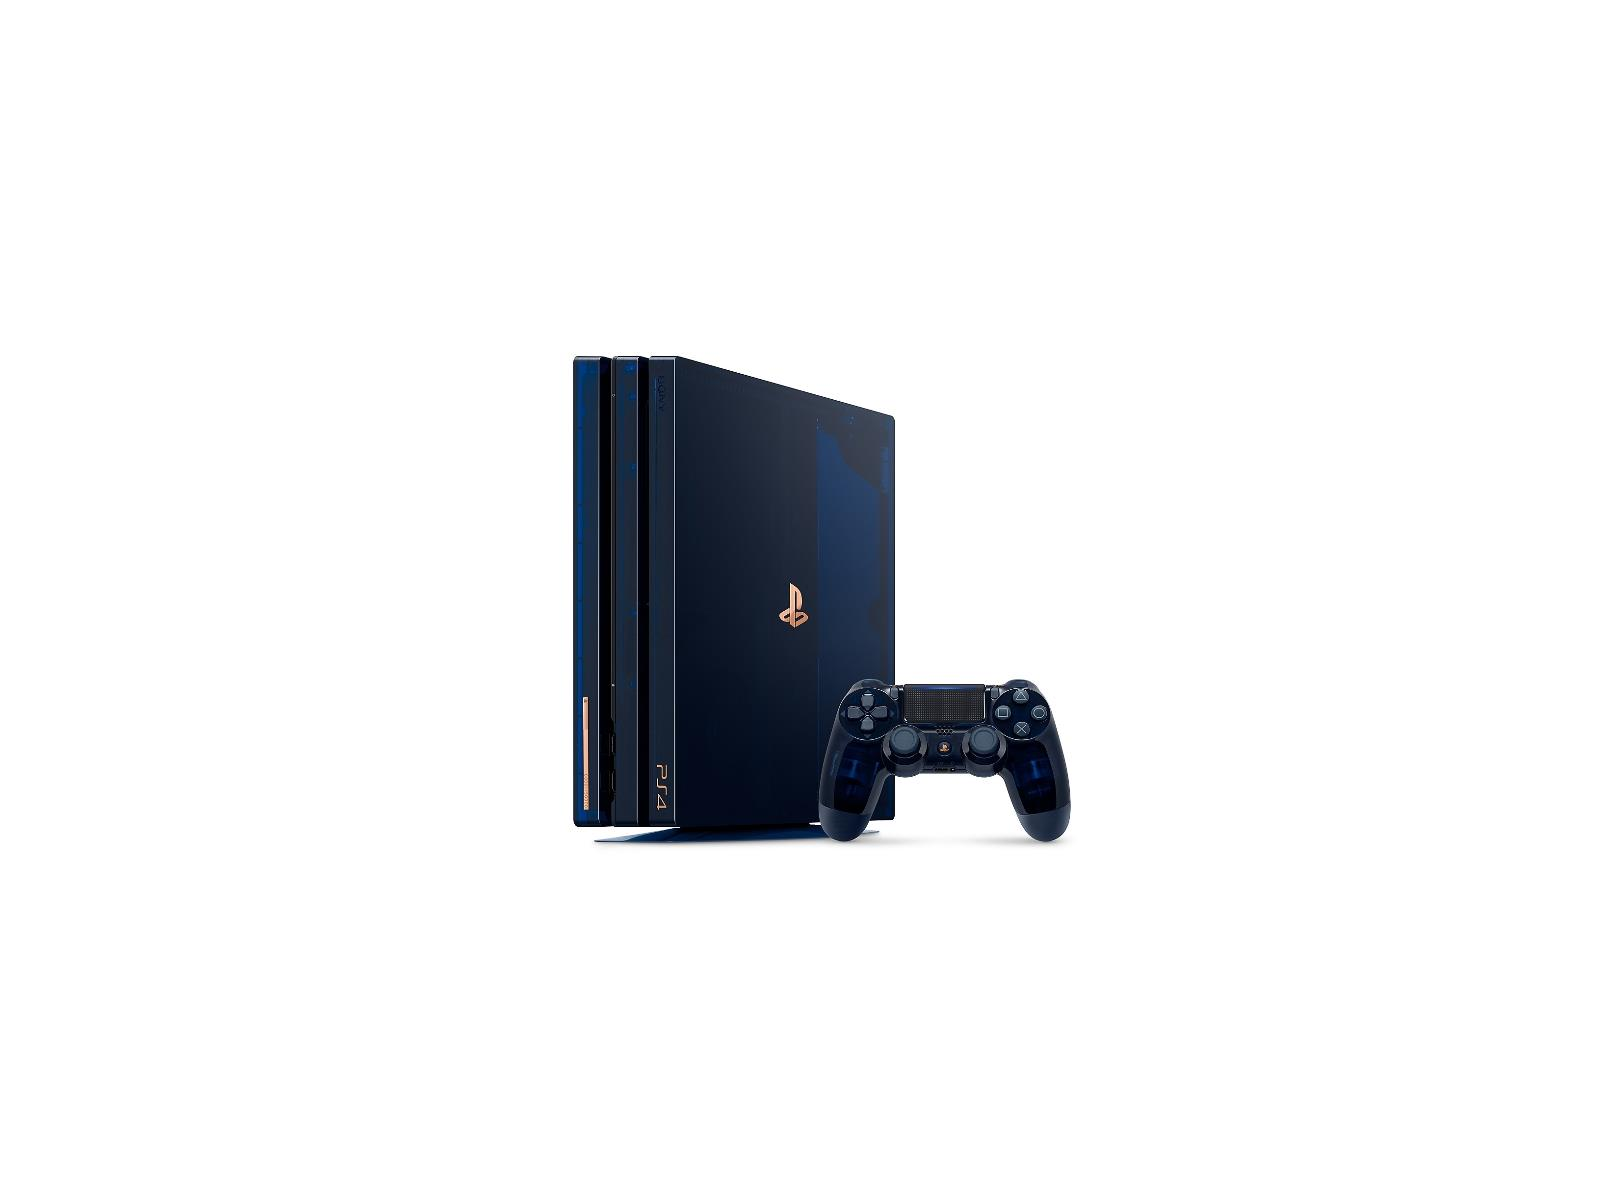 Sony's Sweet Translucent Blue Limited Edition PS4 Pro Now On Sale